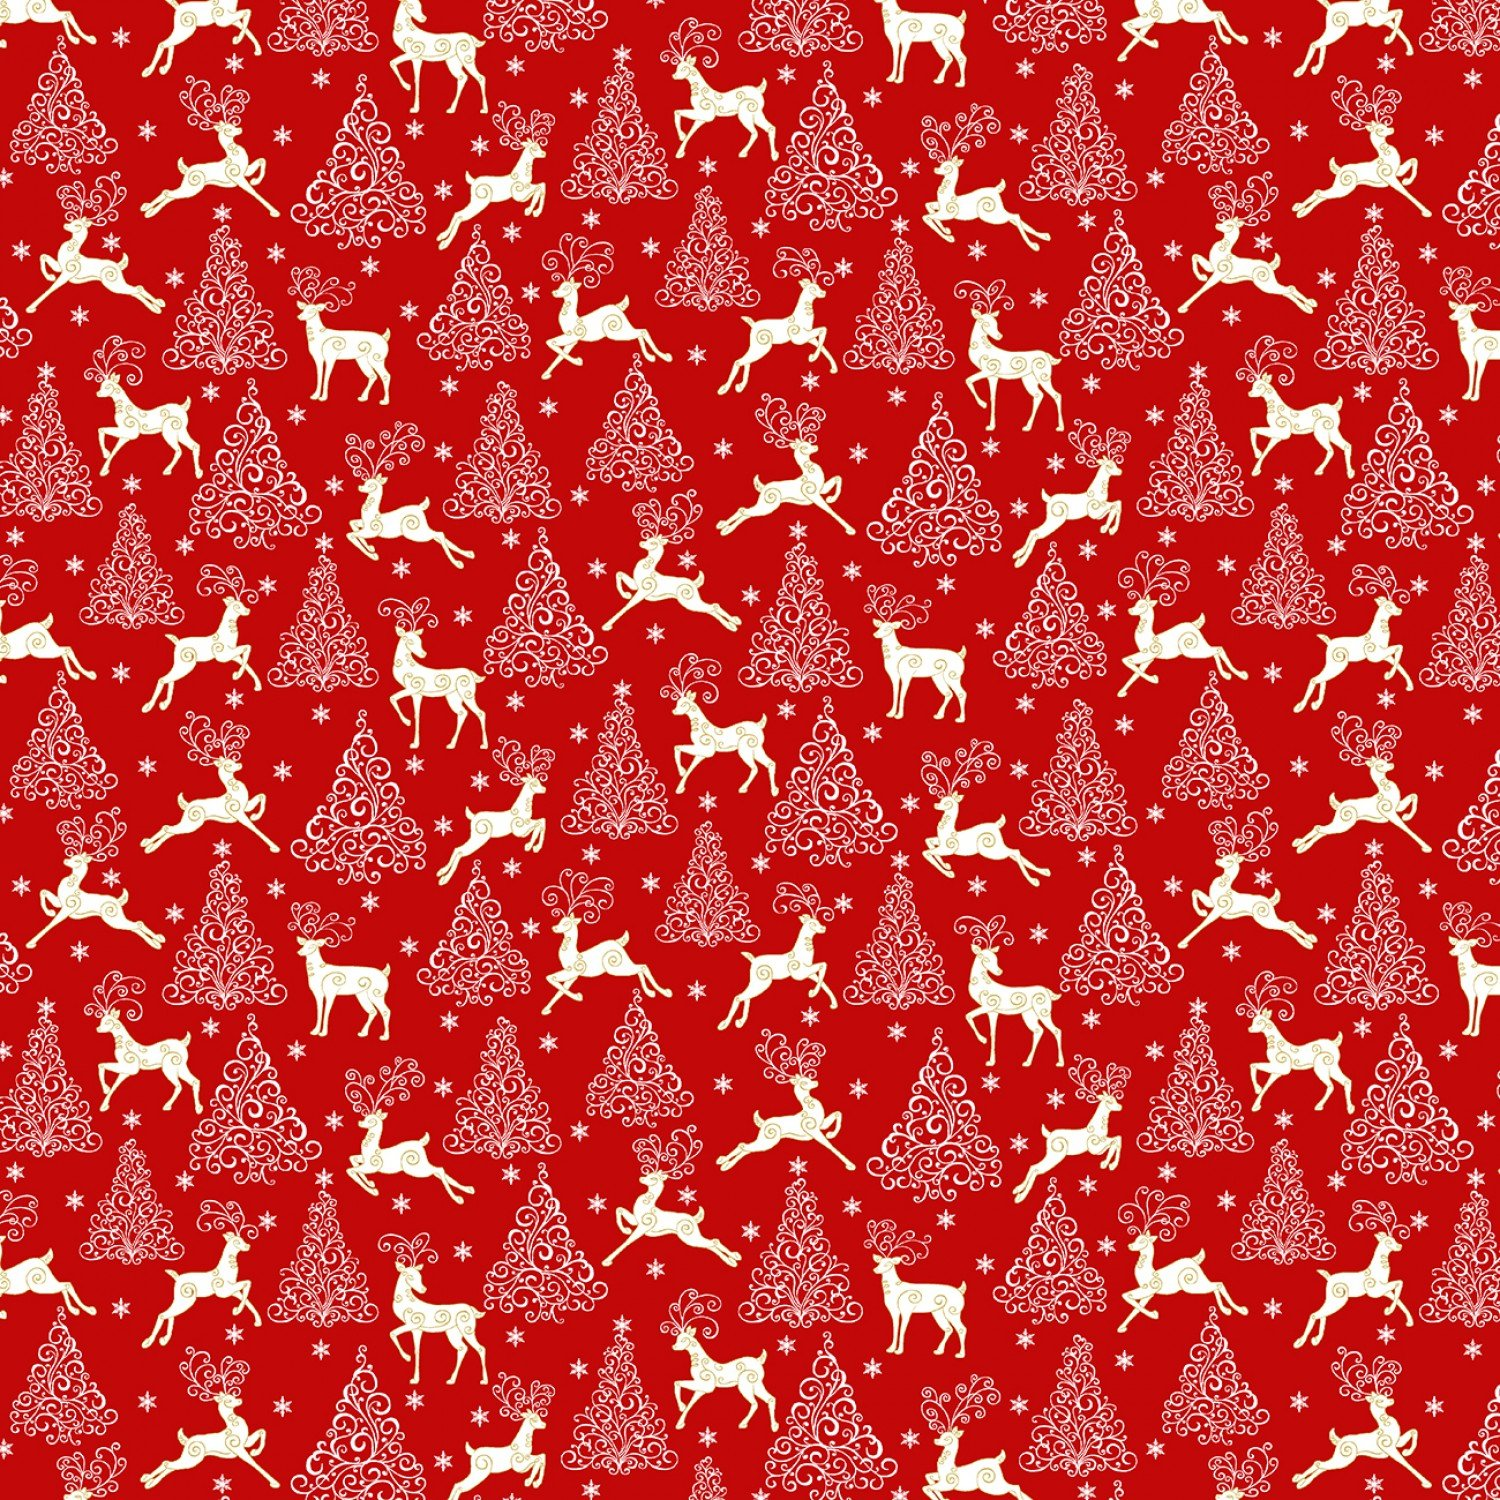 Deer Festival, Deer, Trees, and Stars Red fabric by Jackie Robinson for Benartex Fabrics 6876M-20